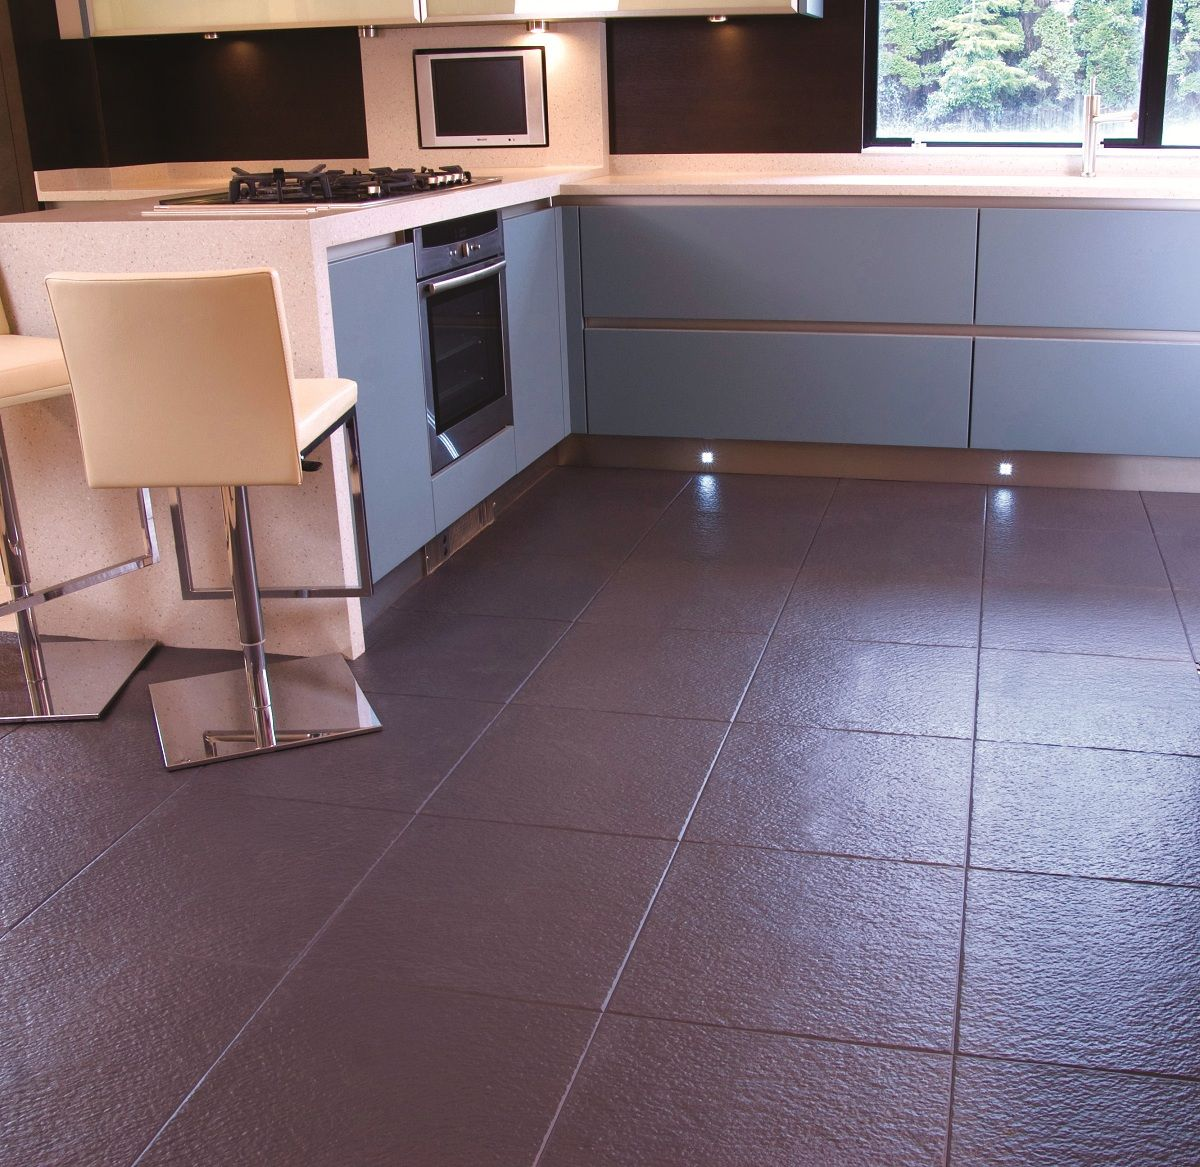 Residential rubber floor tile google search house pinterest residential rubber floor tile google search dailygadgetfo Choice Image